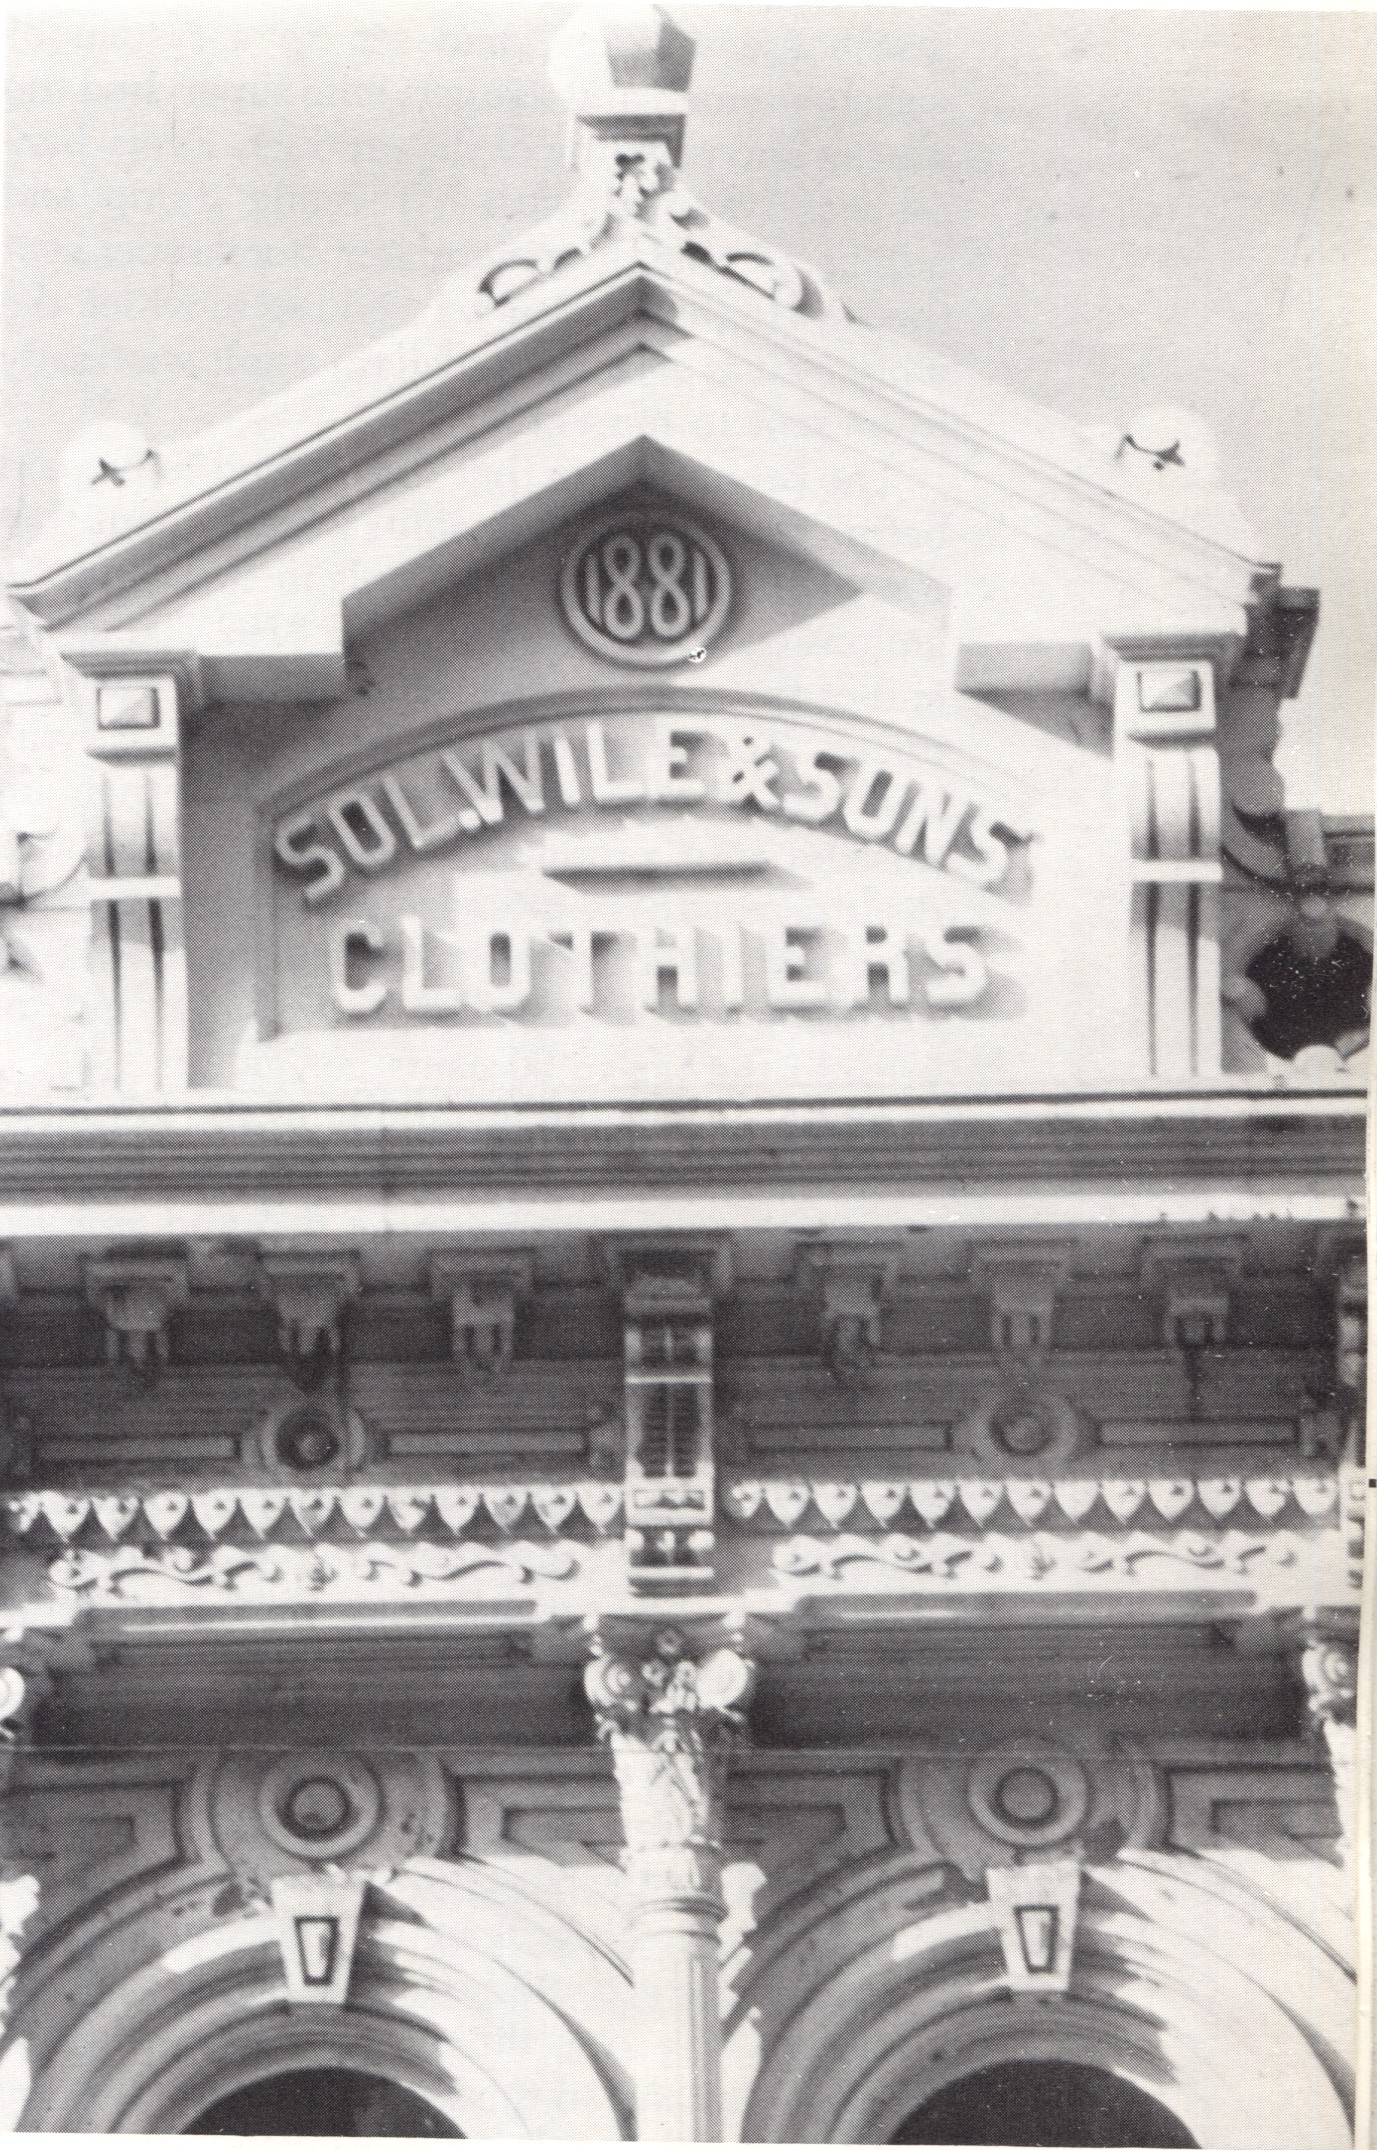 Iron Front of Solomon Wile & Sons Clothiers Building